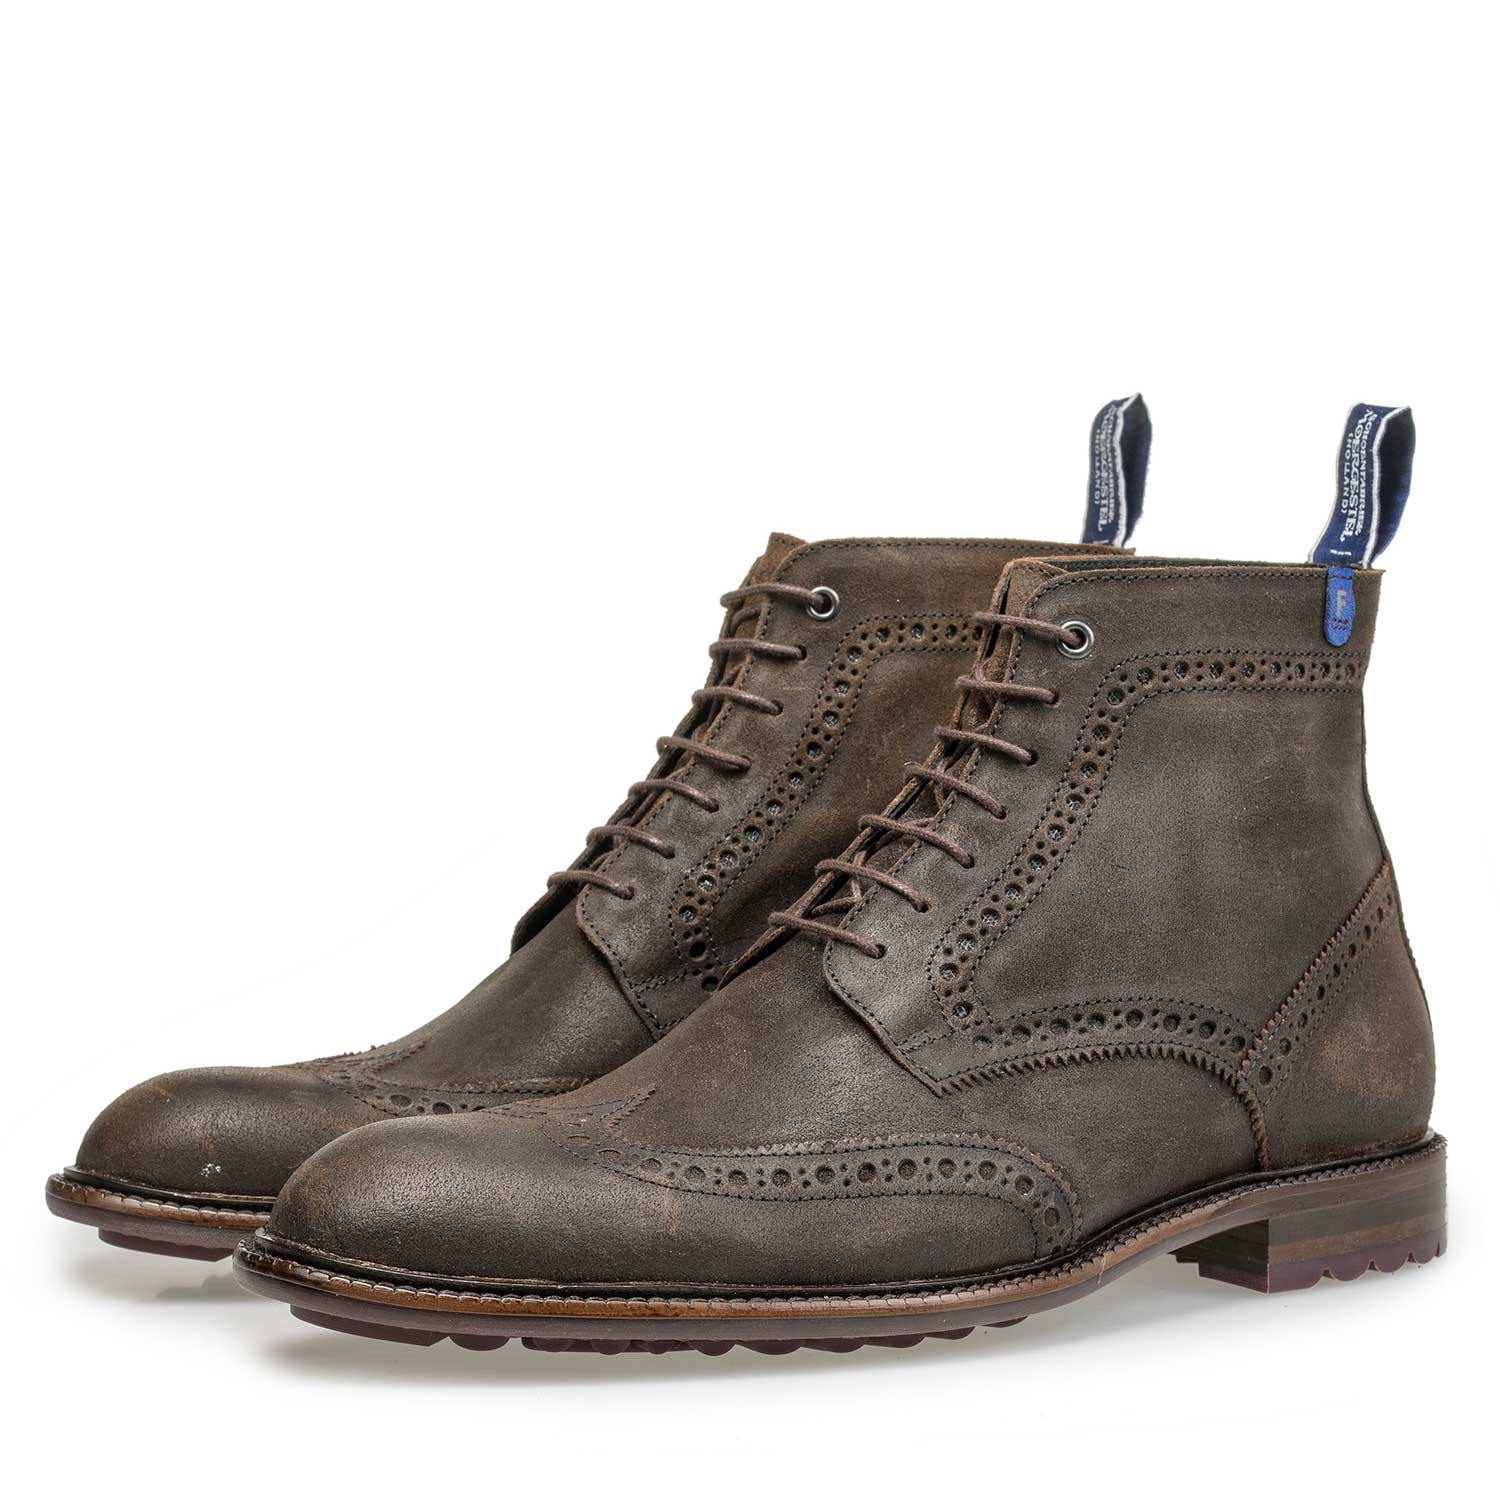 10506/05 - Brown suede leather brogue lace boot